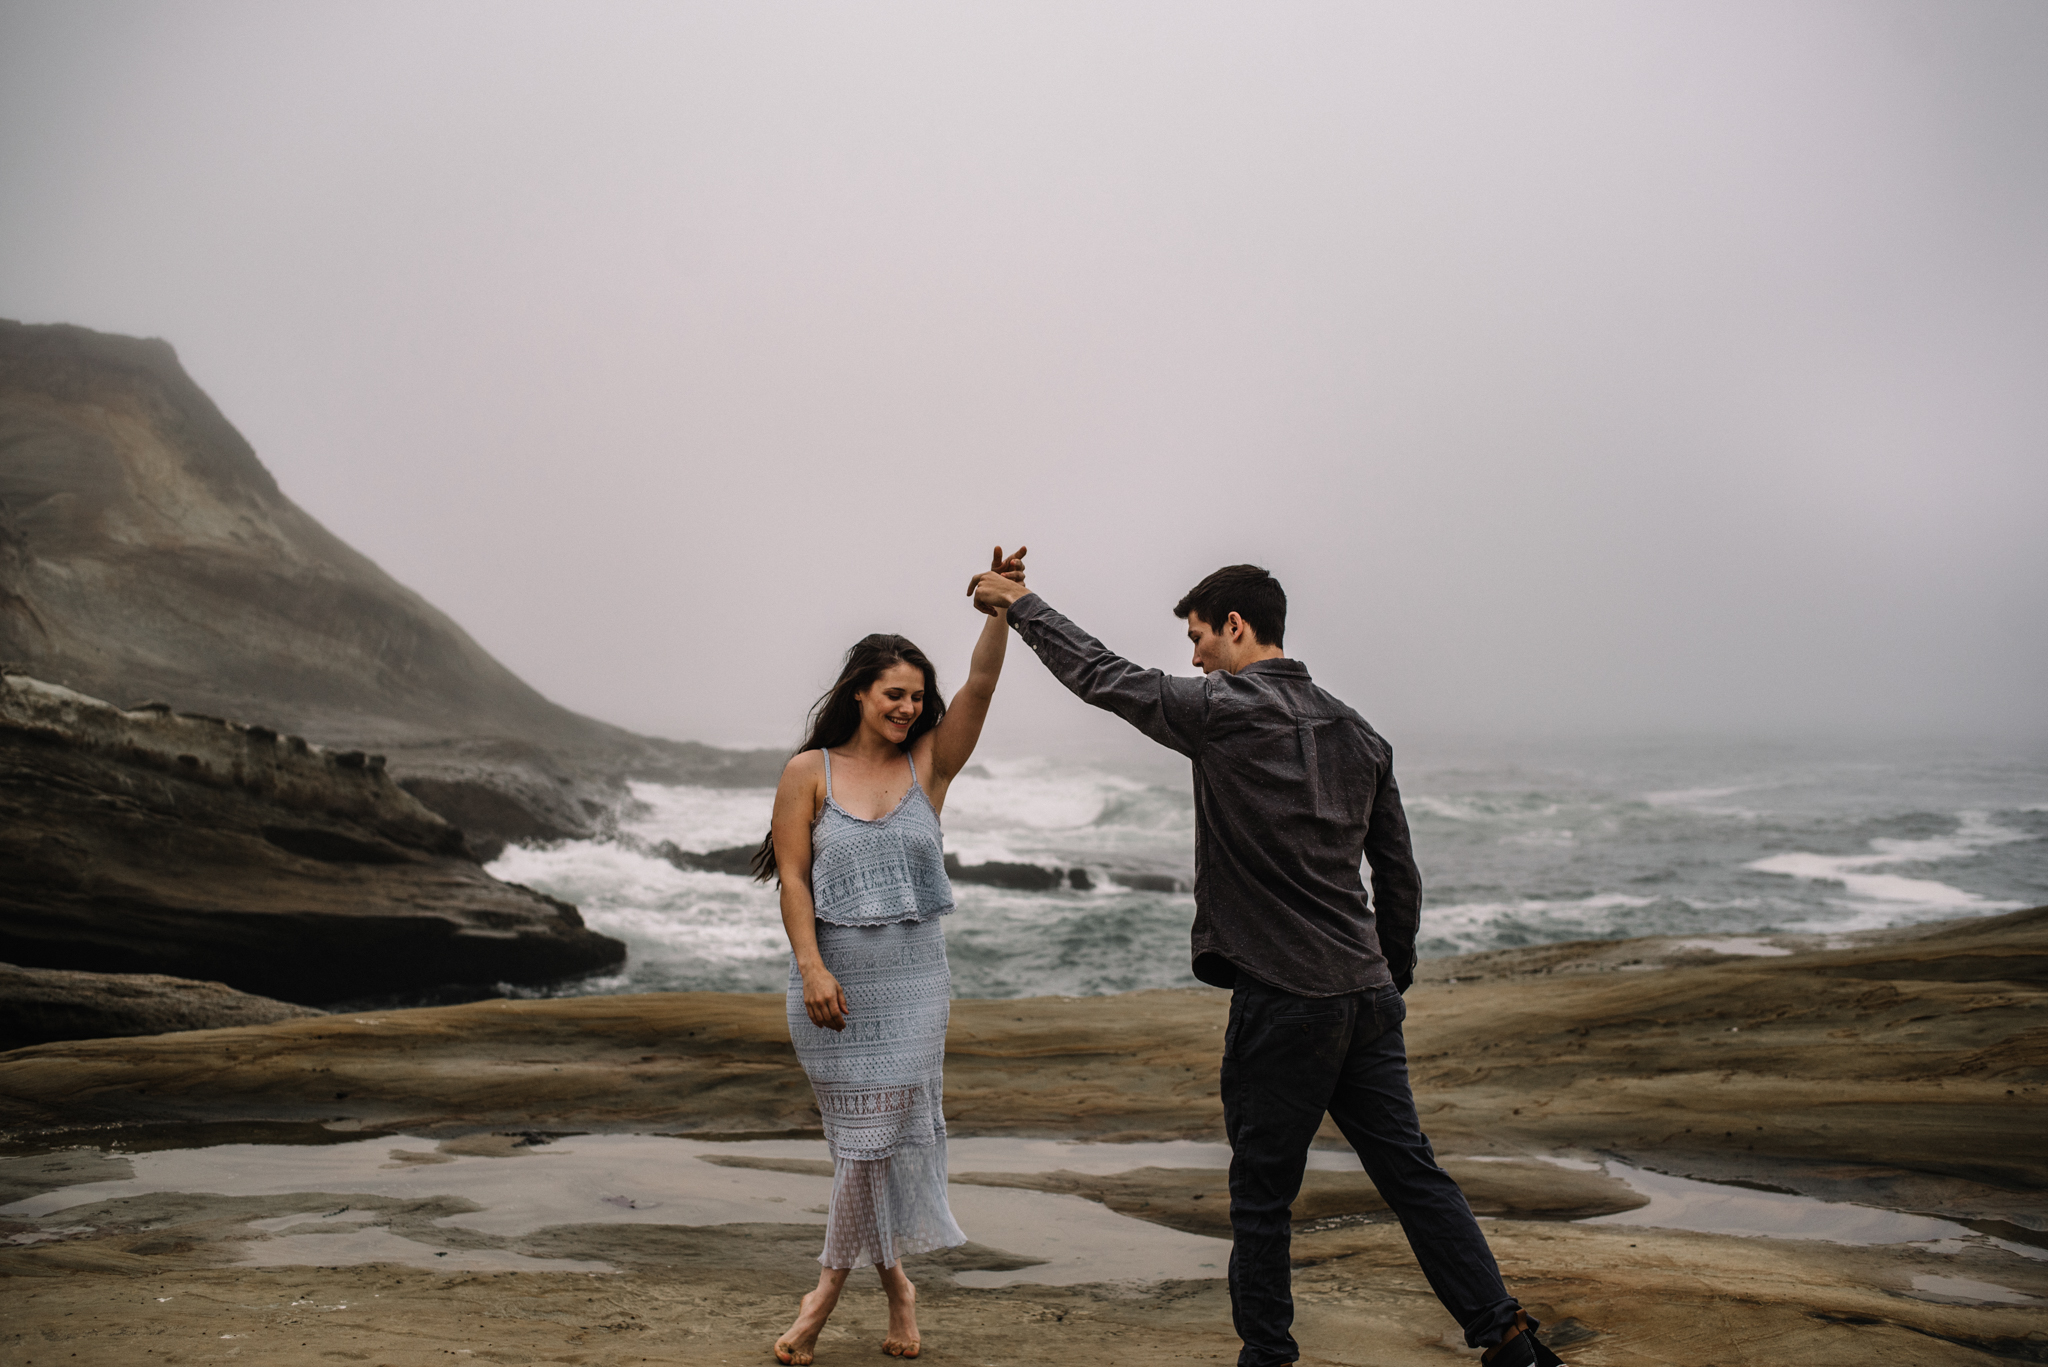 Ruthie and Anthony - Foggy Oregon Coast Couple Adventure Session - White Sails Photography Creative_23.JPG